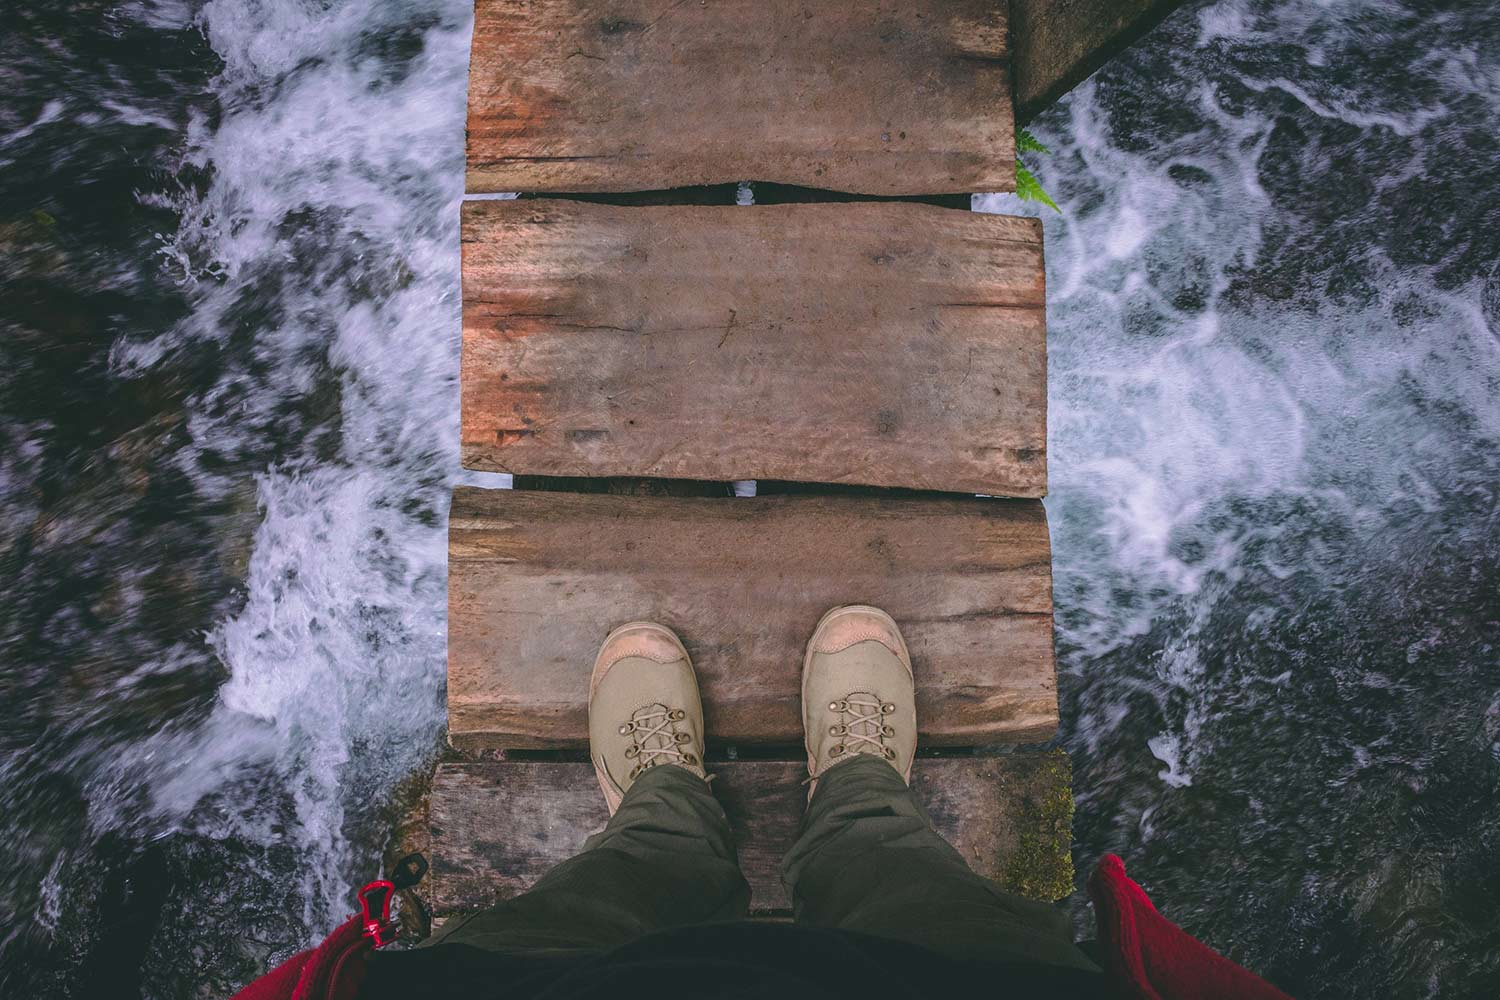 View down at a person's feet as they stand on a wooden plank bridge over a foaming river.